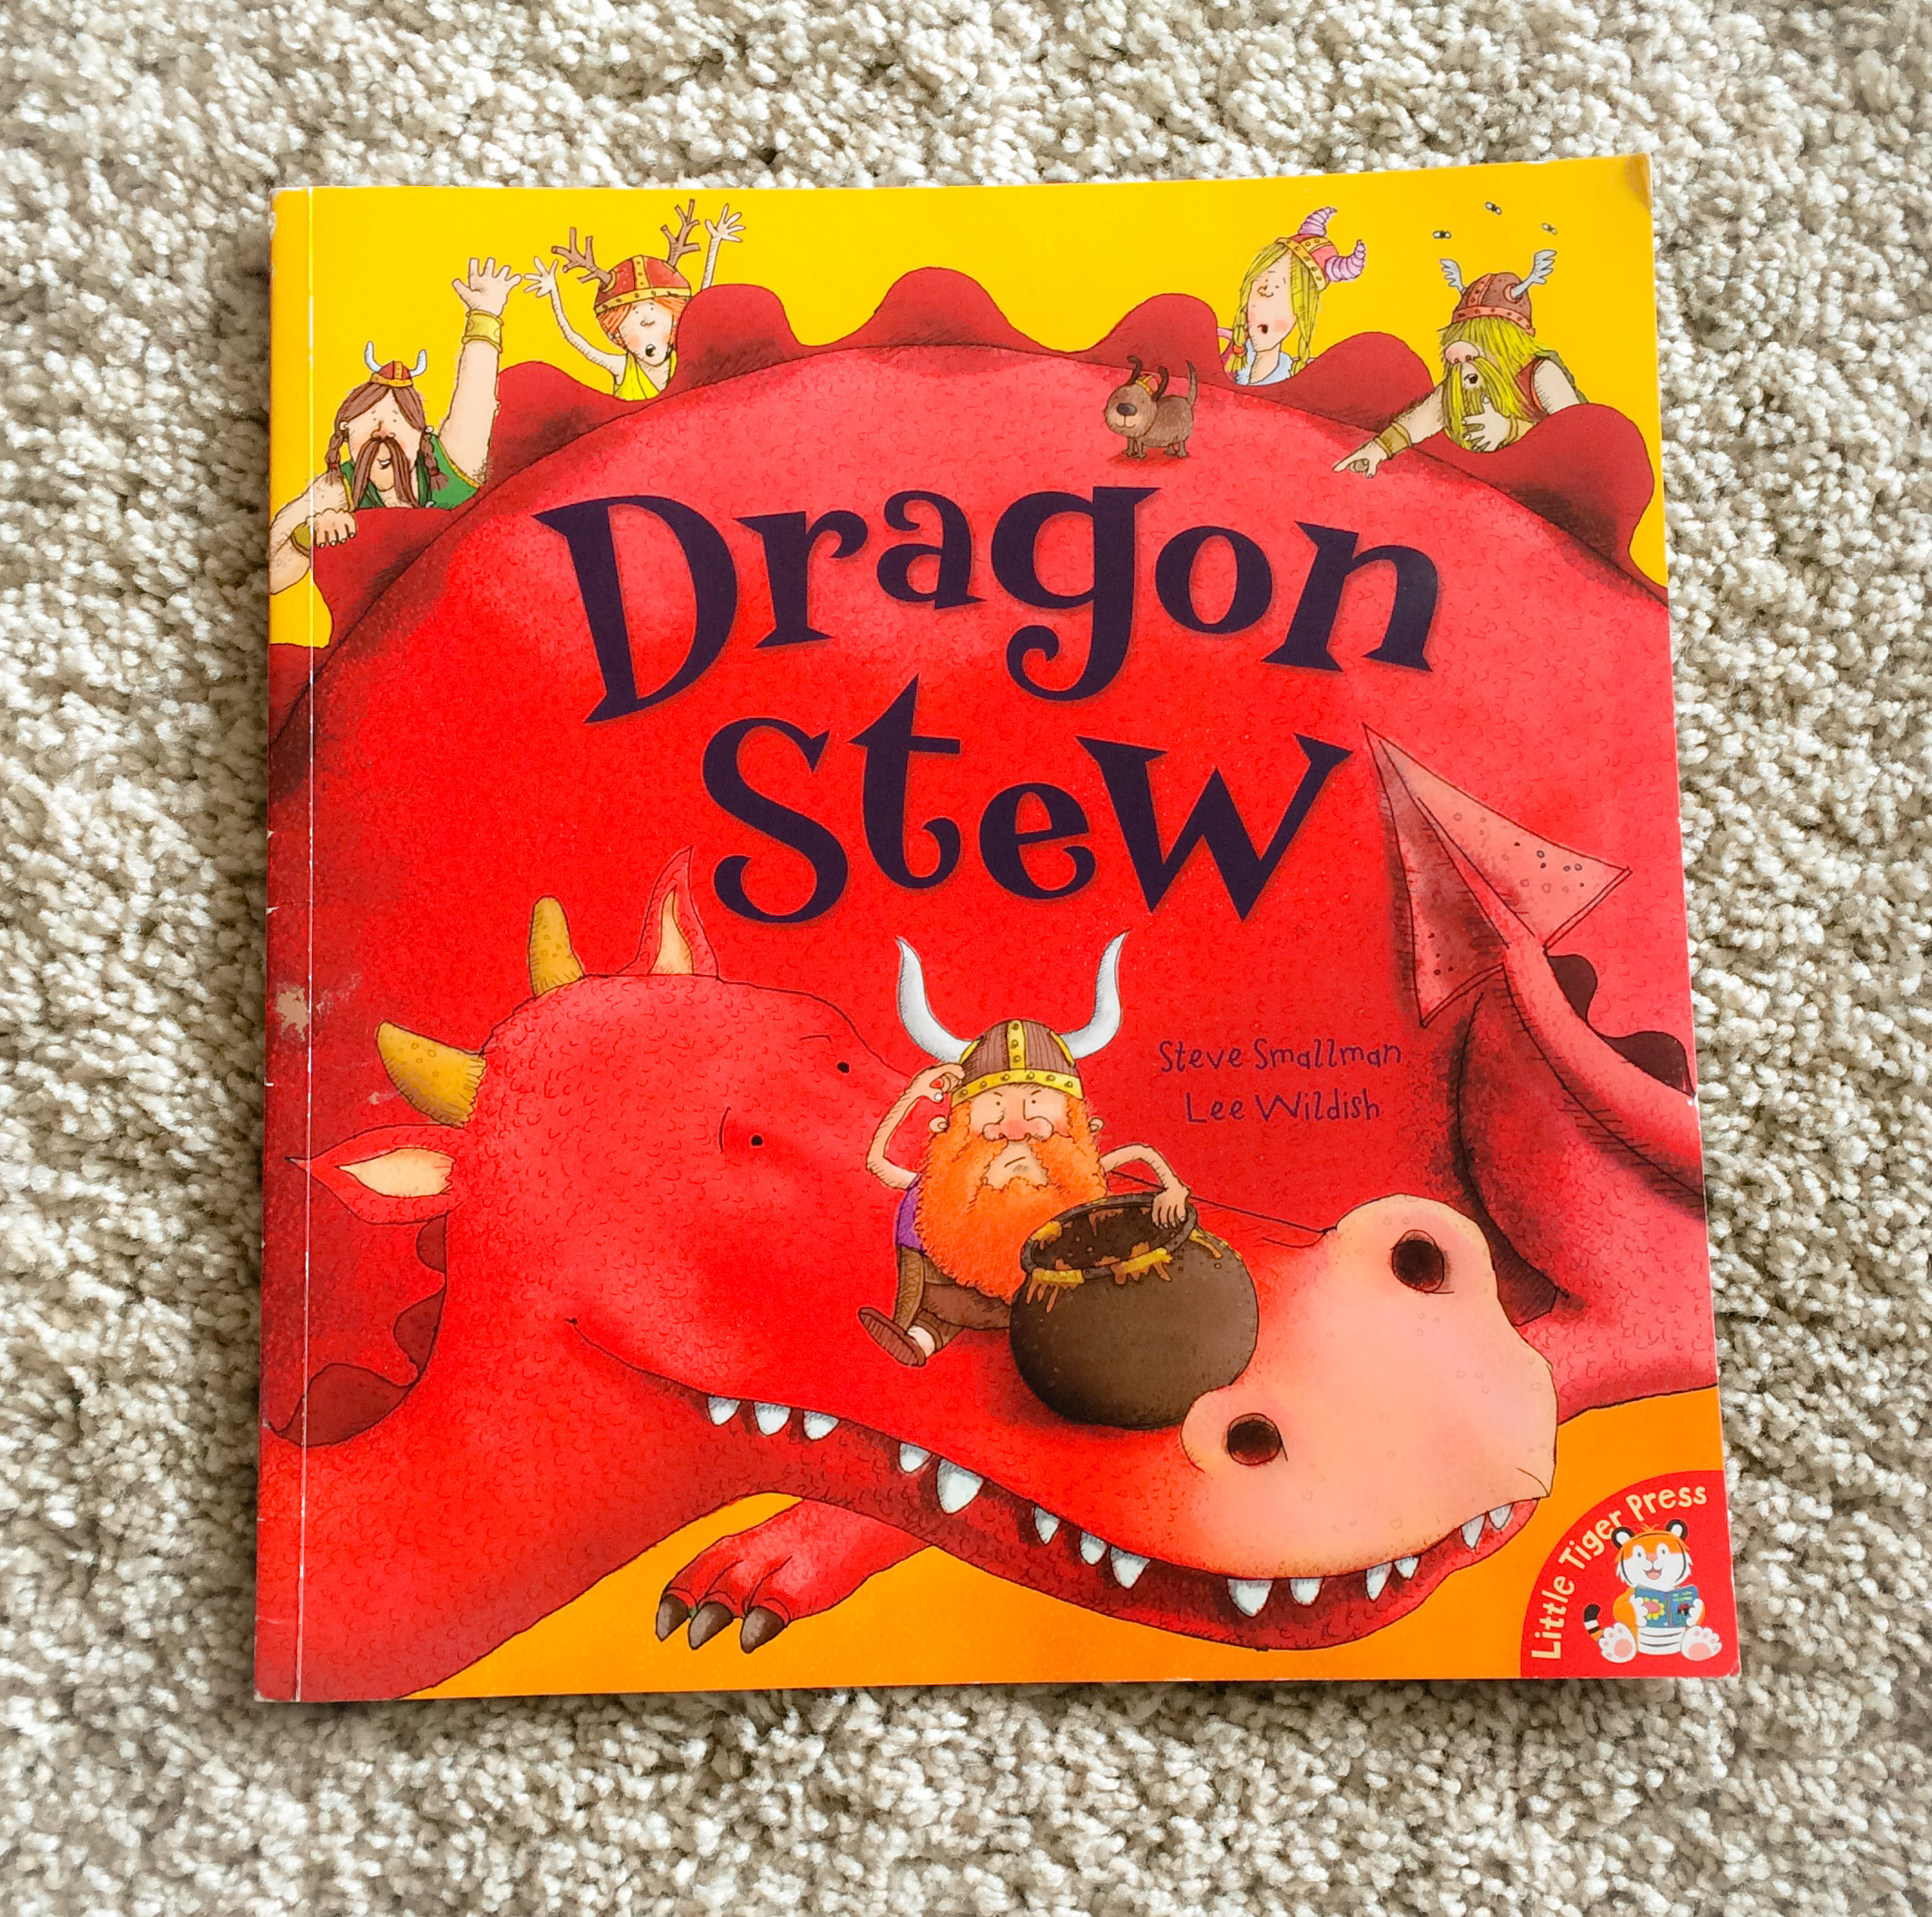 Children's book review - Dragon Stew by Steve Smallman and Lee Wildish